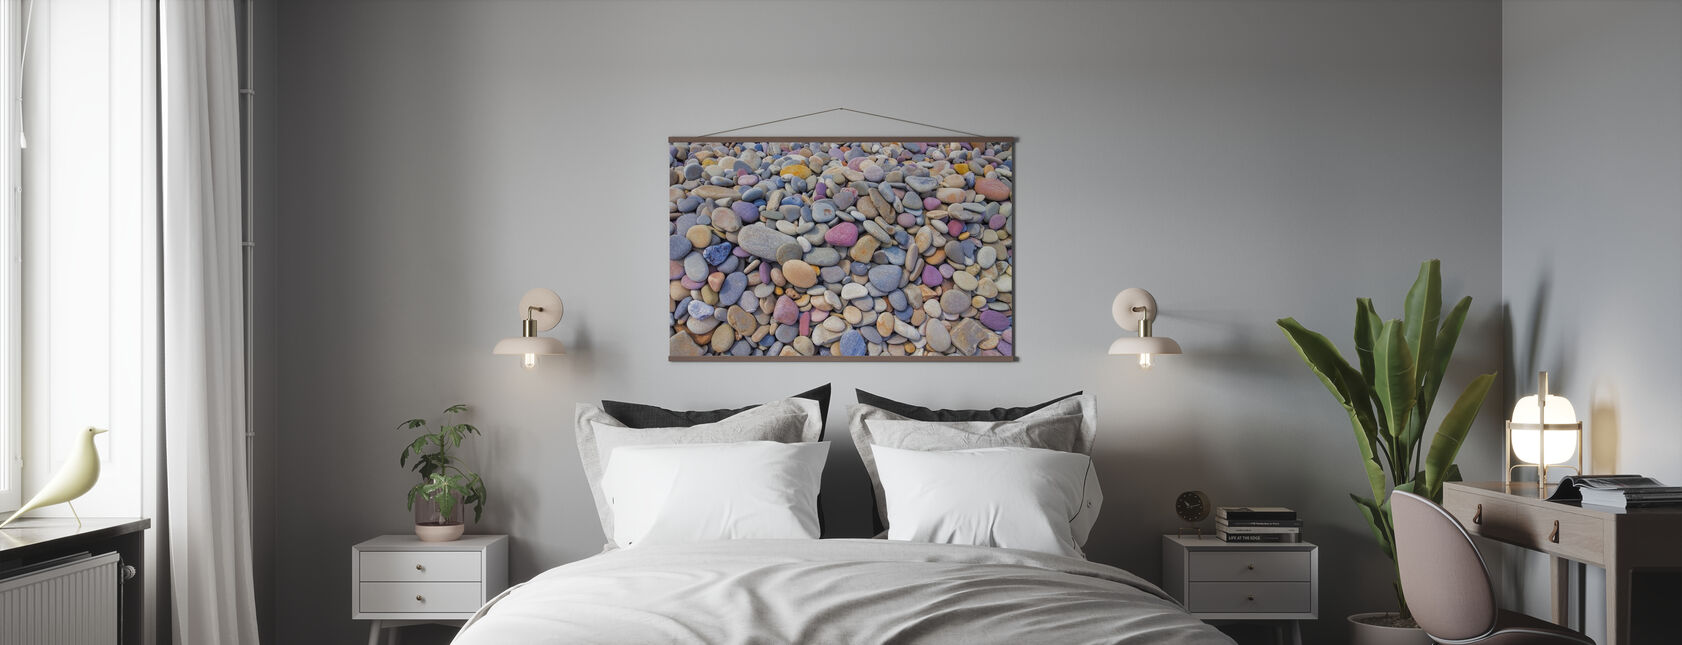 Colourful Pebbles - Poster - Bedroom